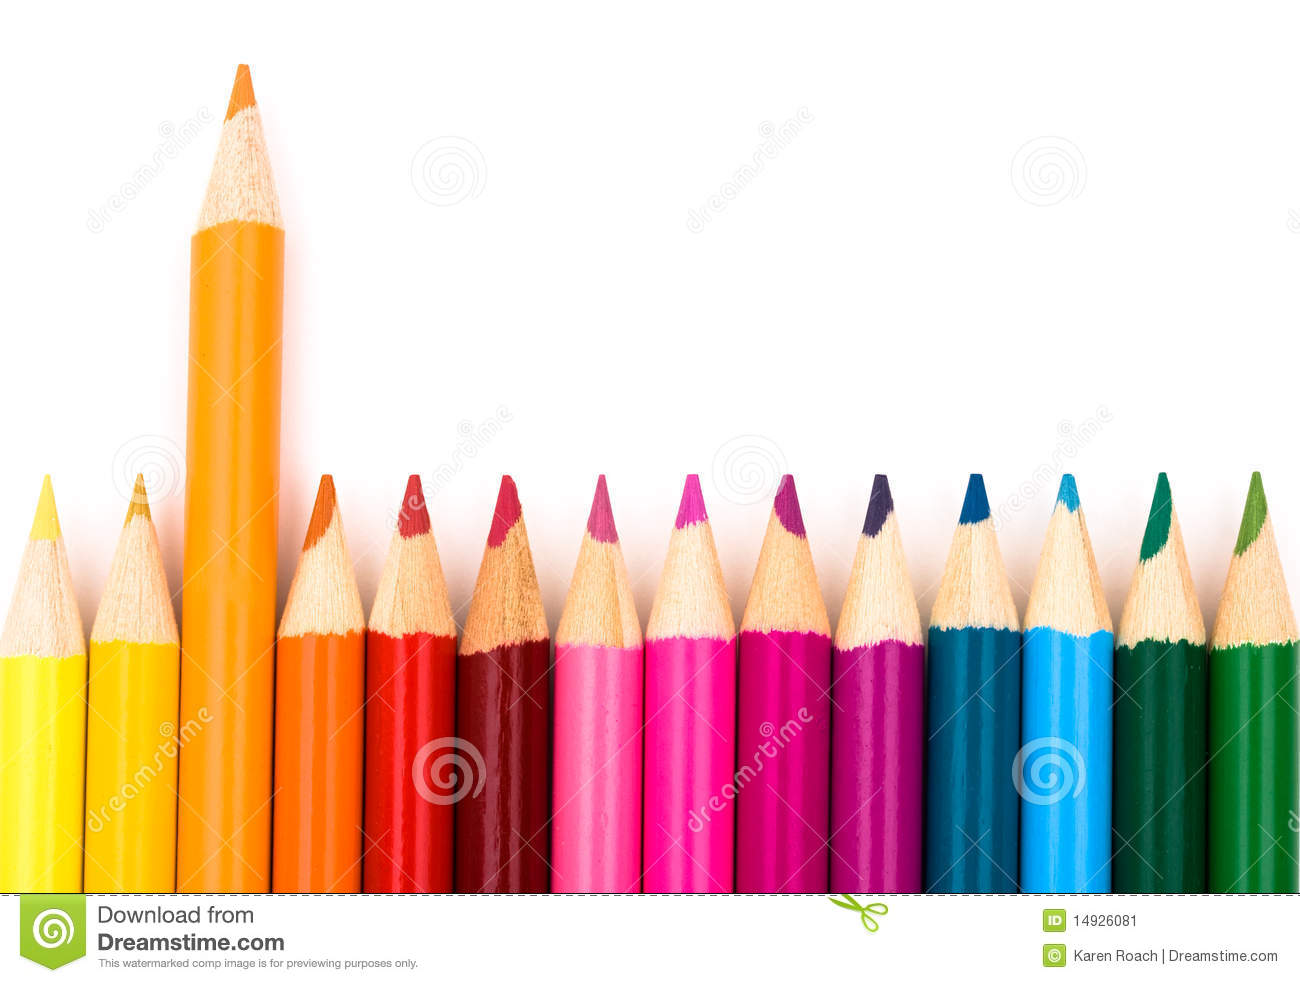 Colorful pencil crayons on a white background, Education background.